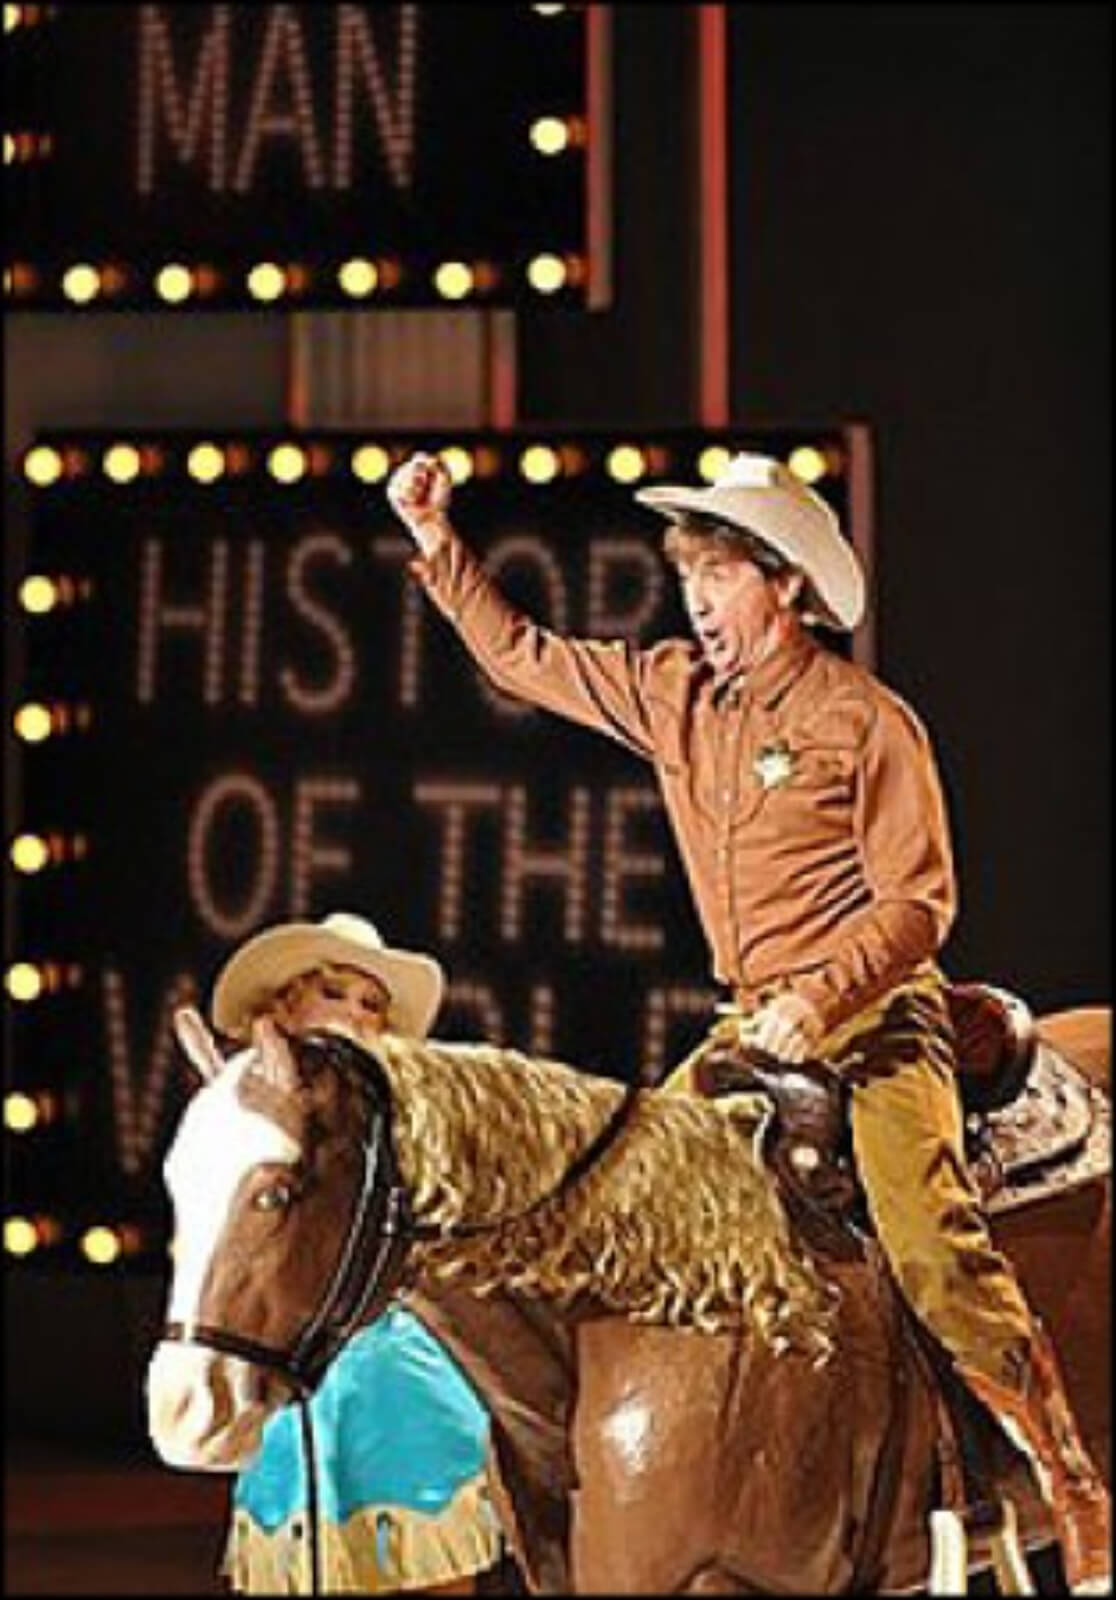 Martin Short on stage riding a horse and wearing a cowboy hat and outfit.